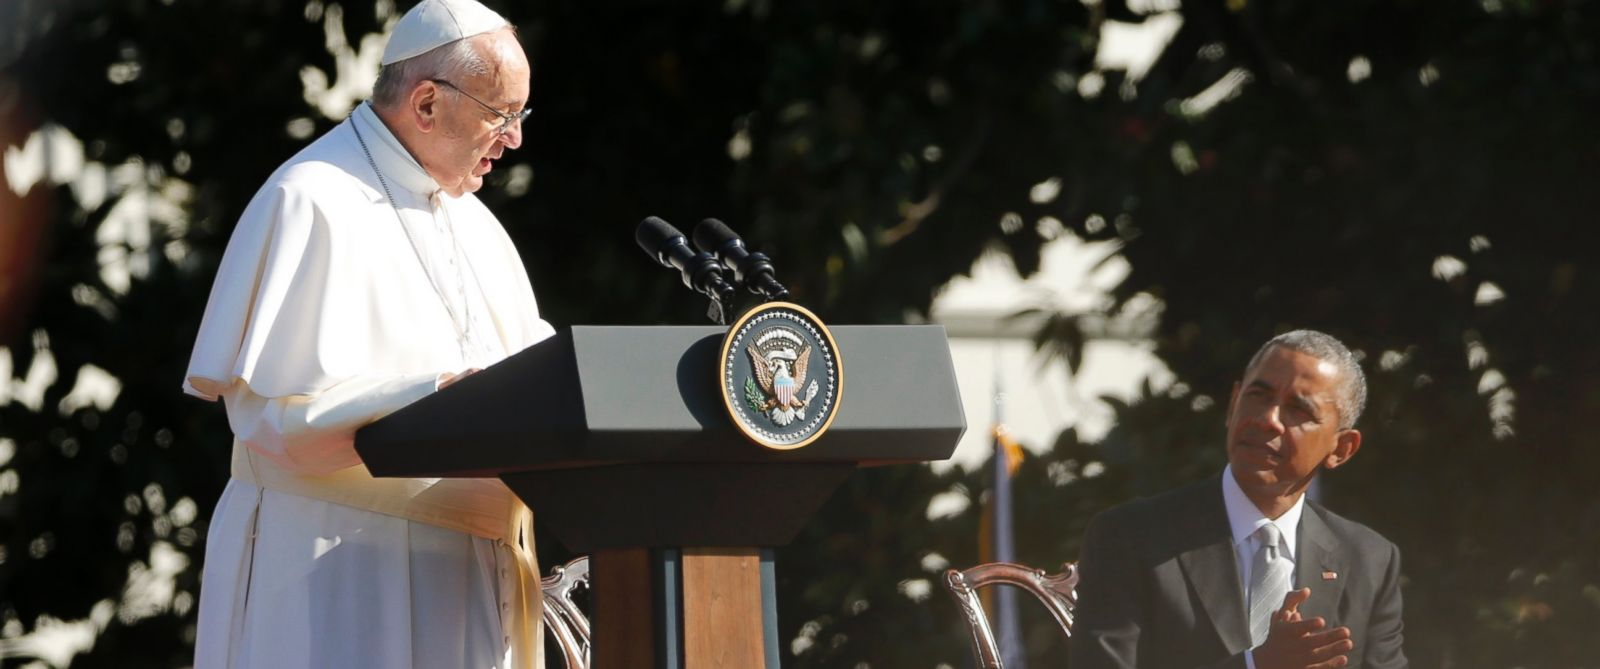 PHOTO: President Barack Obama applauds during remarks from Pope Francis at an arrival ceremony at the White House in Washington, Sept. 23, 2015.